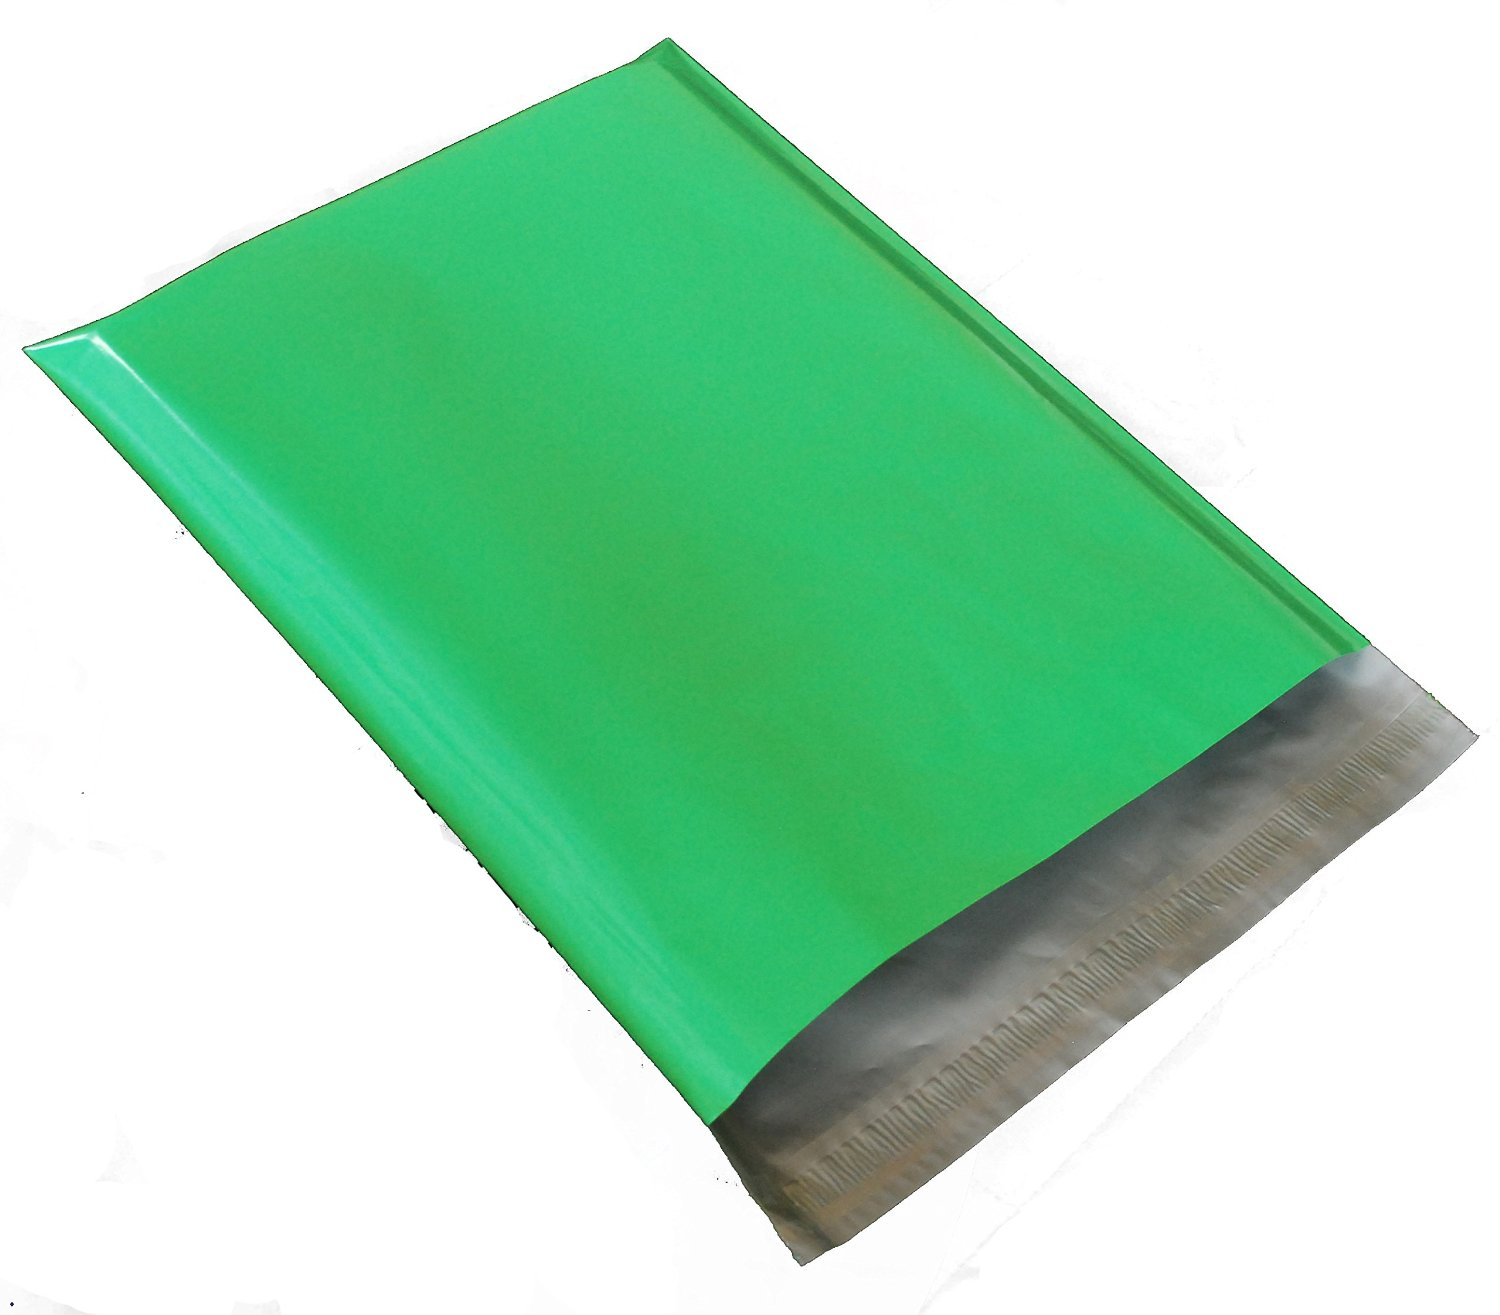 "1000 10x13 Green ValueMailers Poly Mailers Shipping Envelopes Bags 10"" x 13"" by ValueMailers"